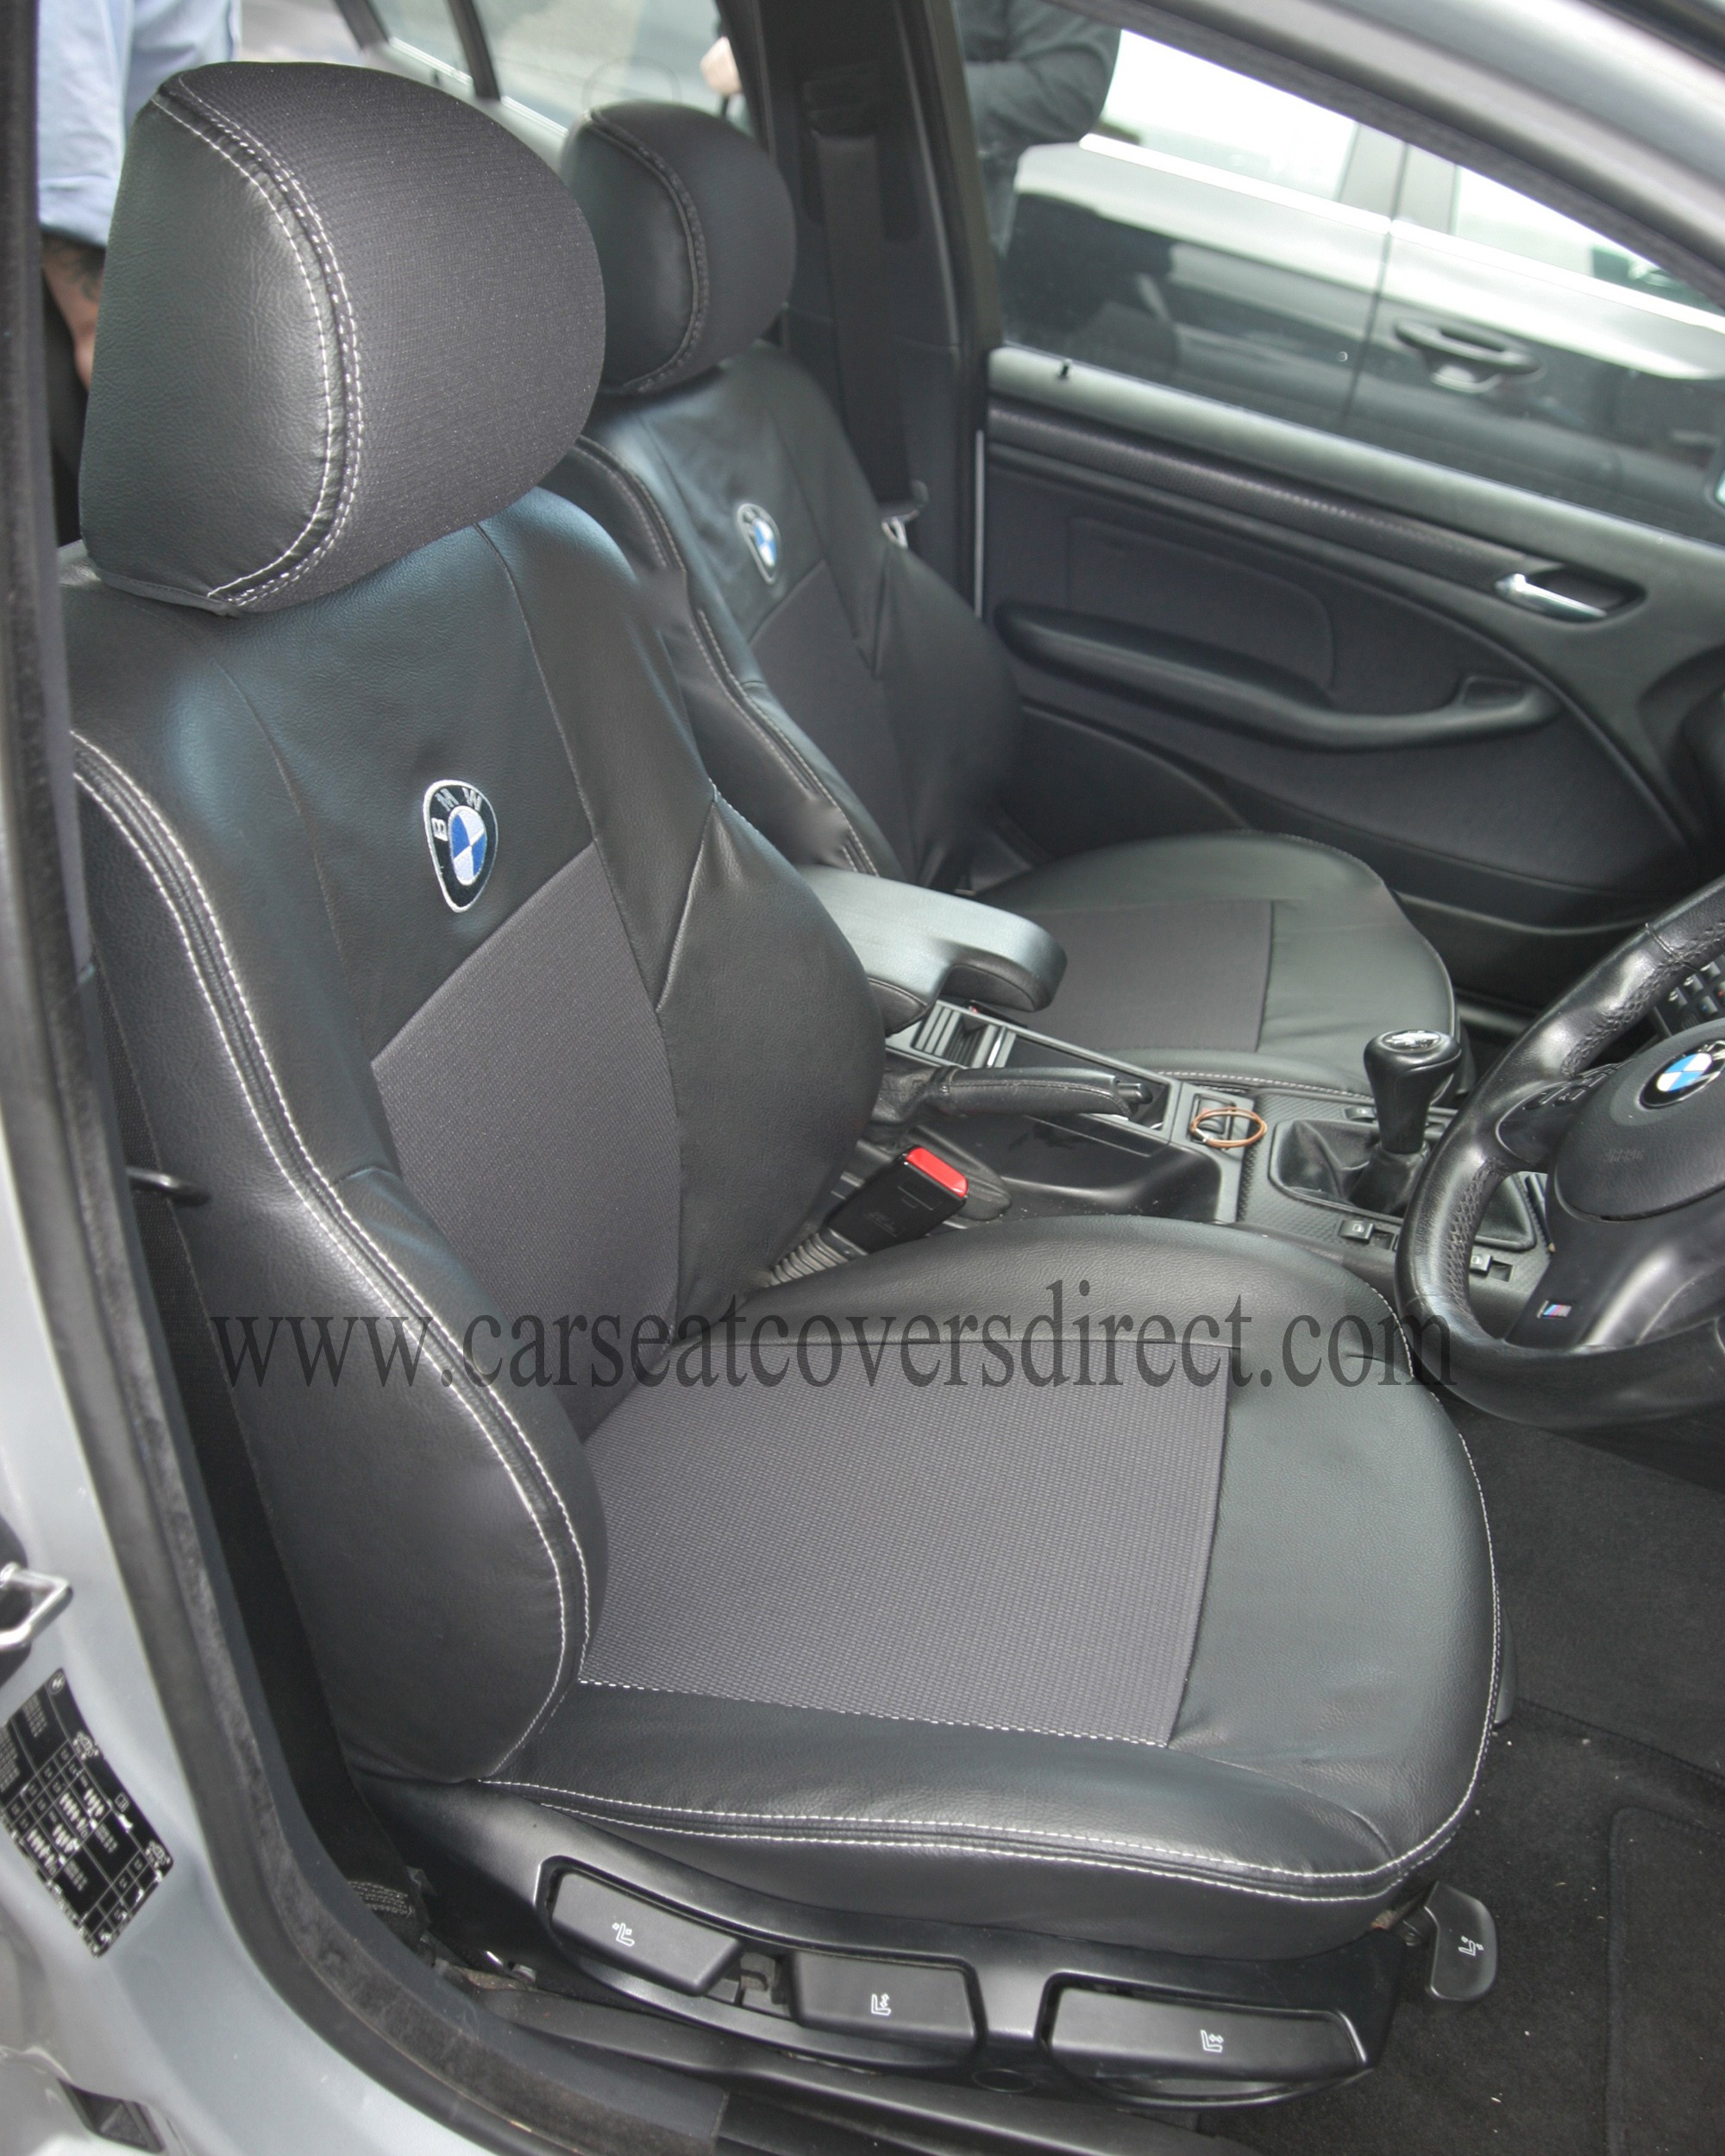 BMW 3 SERIES E46 Seat Covers Car Seat Covers Direct